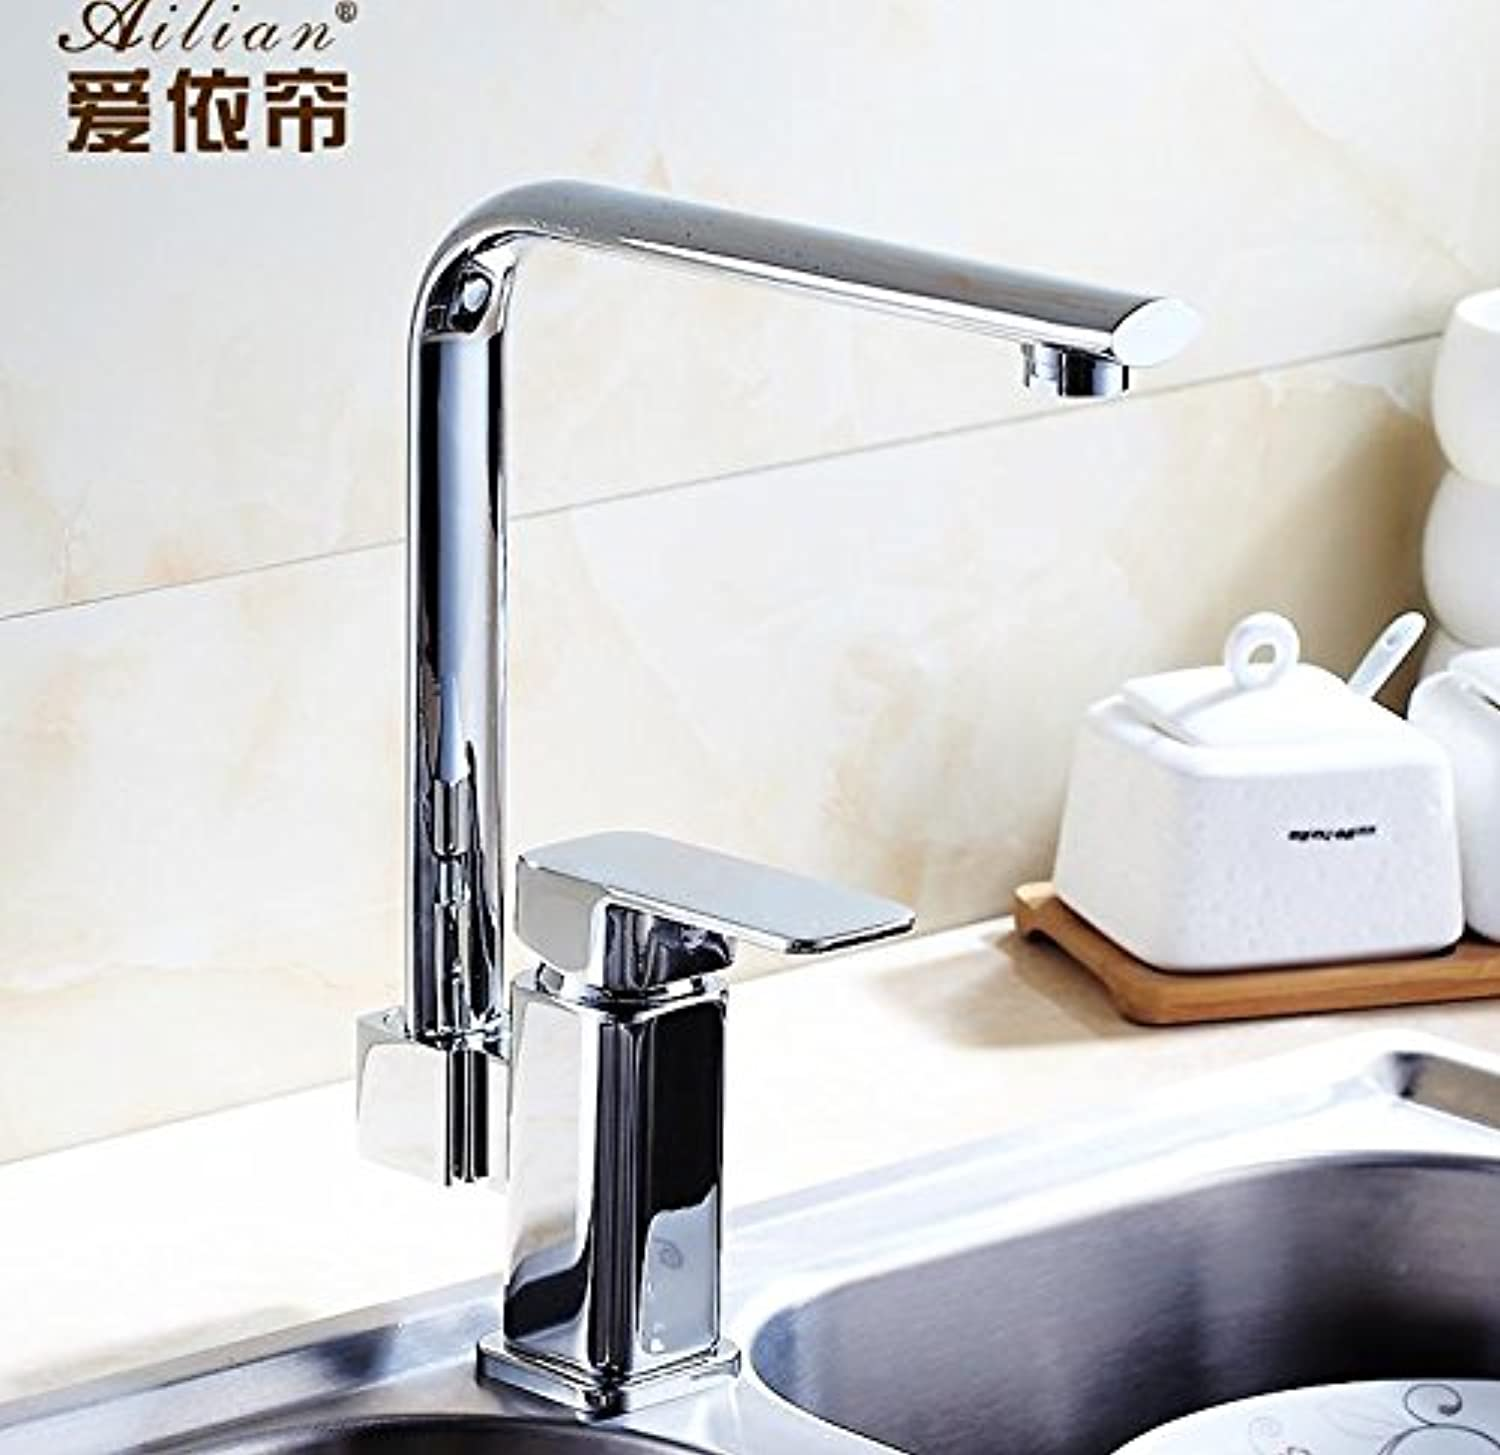 U-Enjoy Nordic Classical Modern Top Quality Kitchen Faucet Hot Cold Vegetables Sink Faucet 100% Copper Kitchen Tap (Free Shipping)